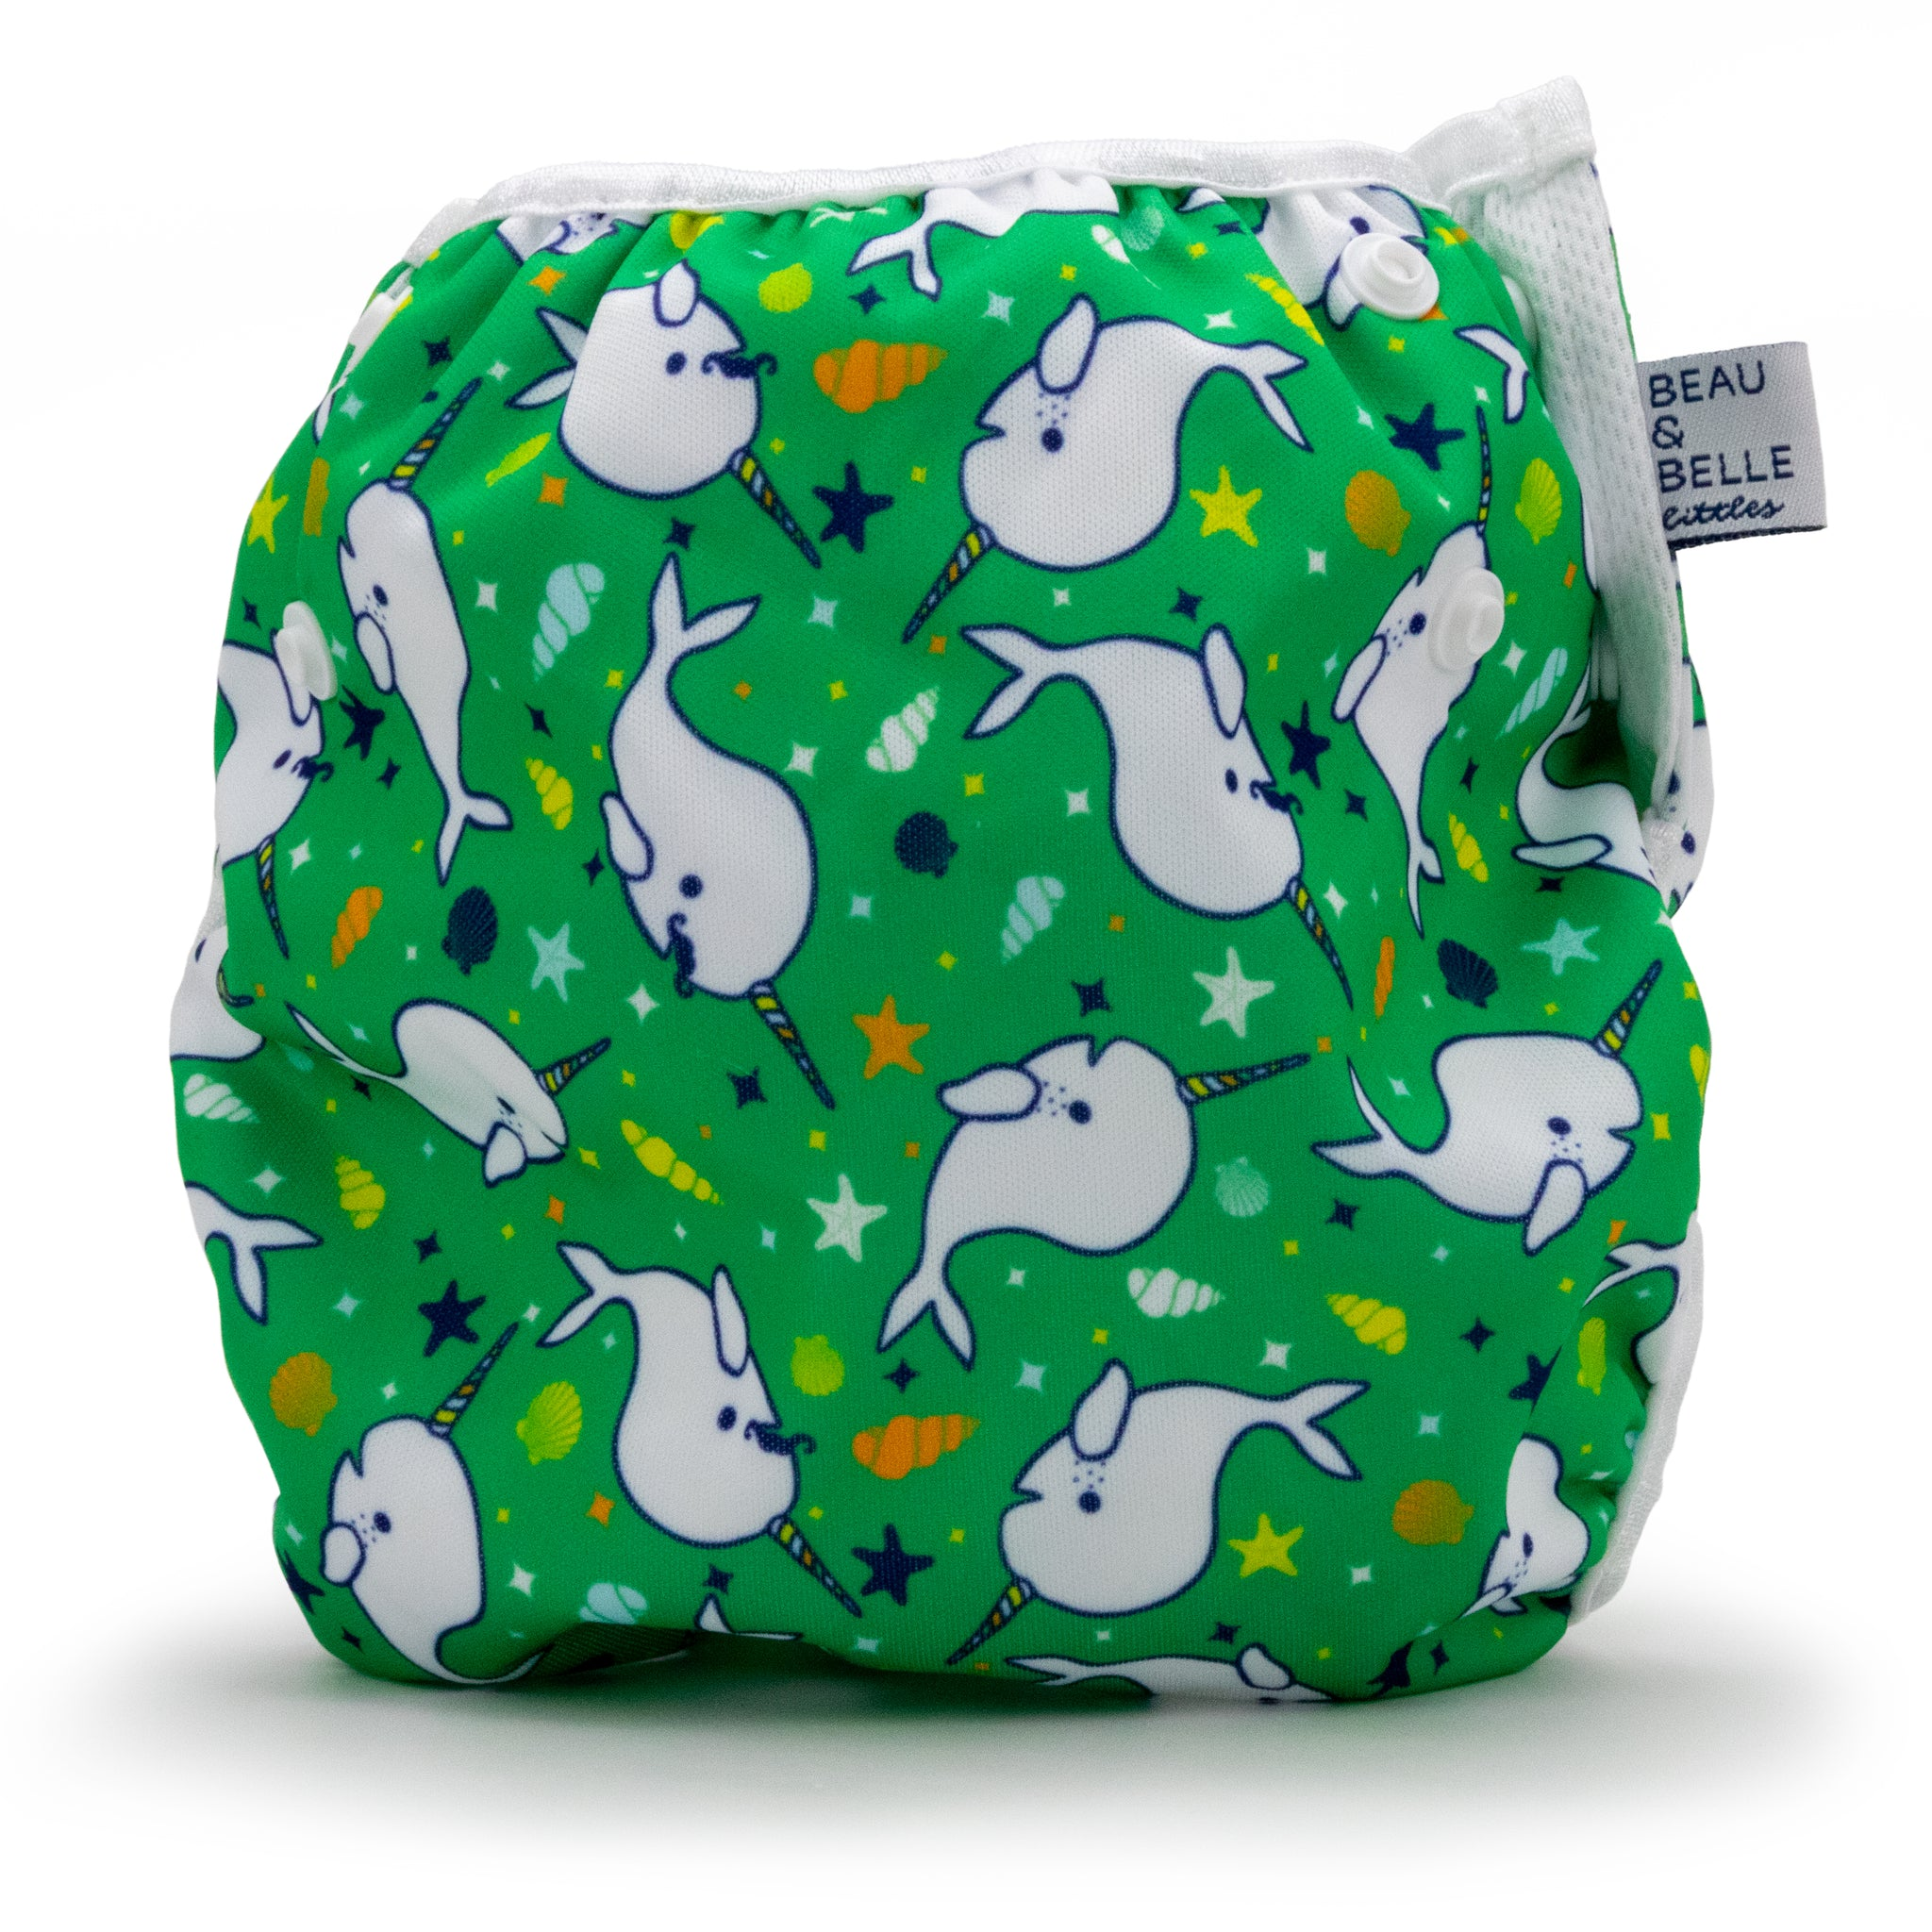 Reusable Swim Diaper with a Green Narwhals Design